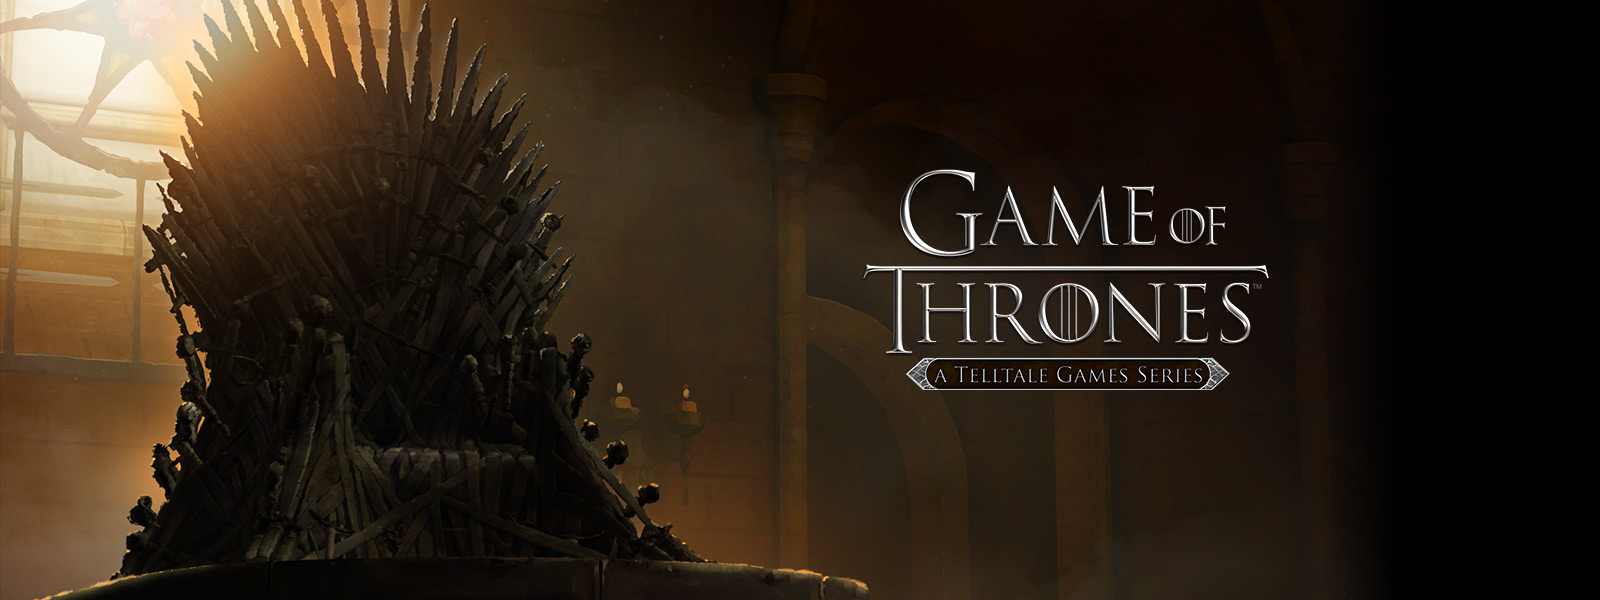 Le trône de fer de Games of Thrones